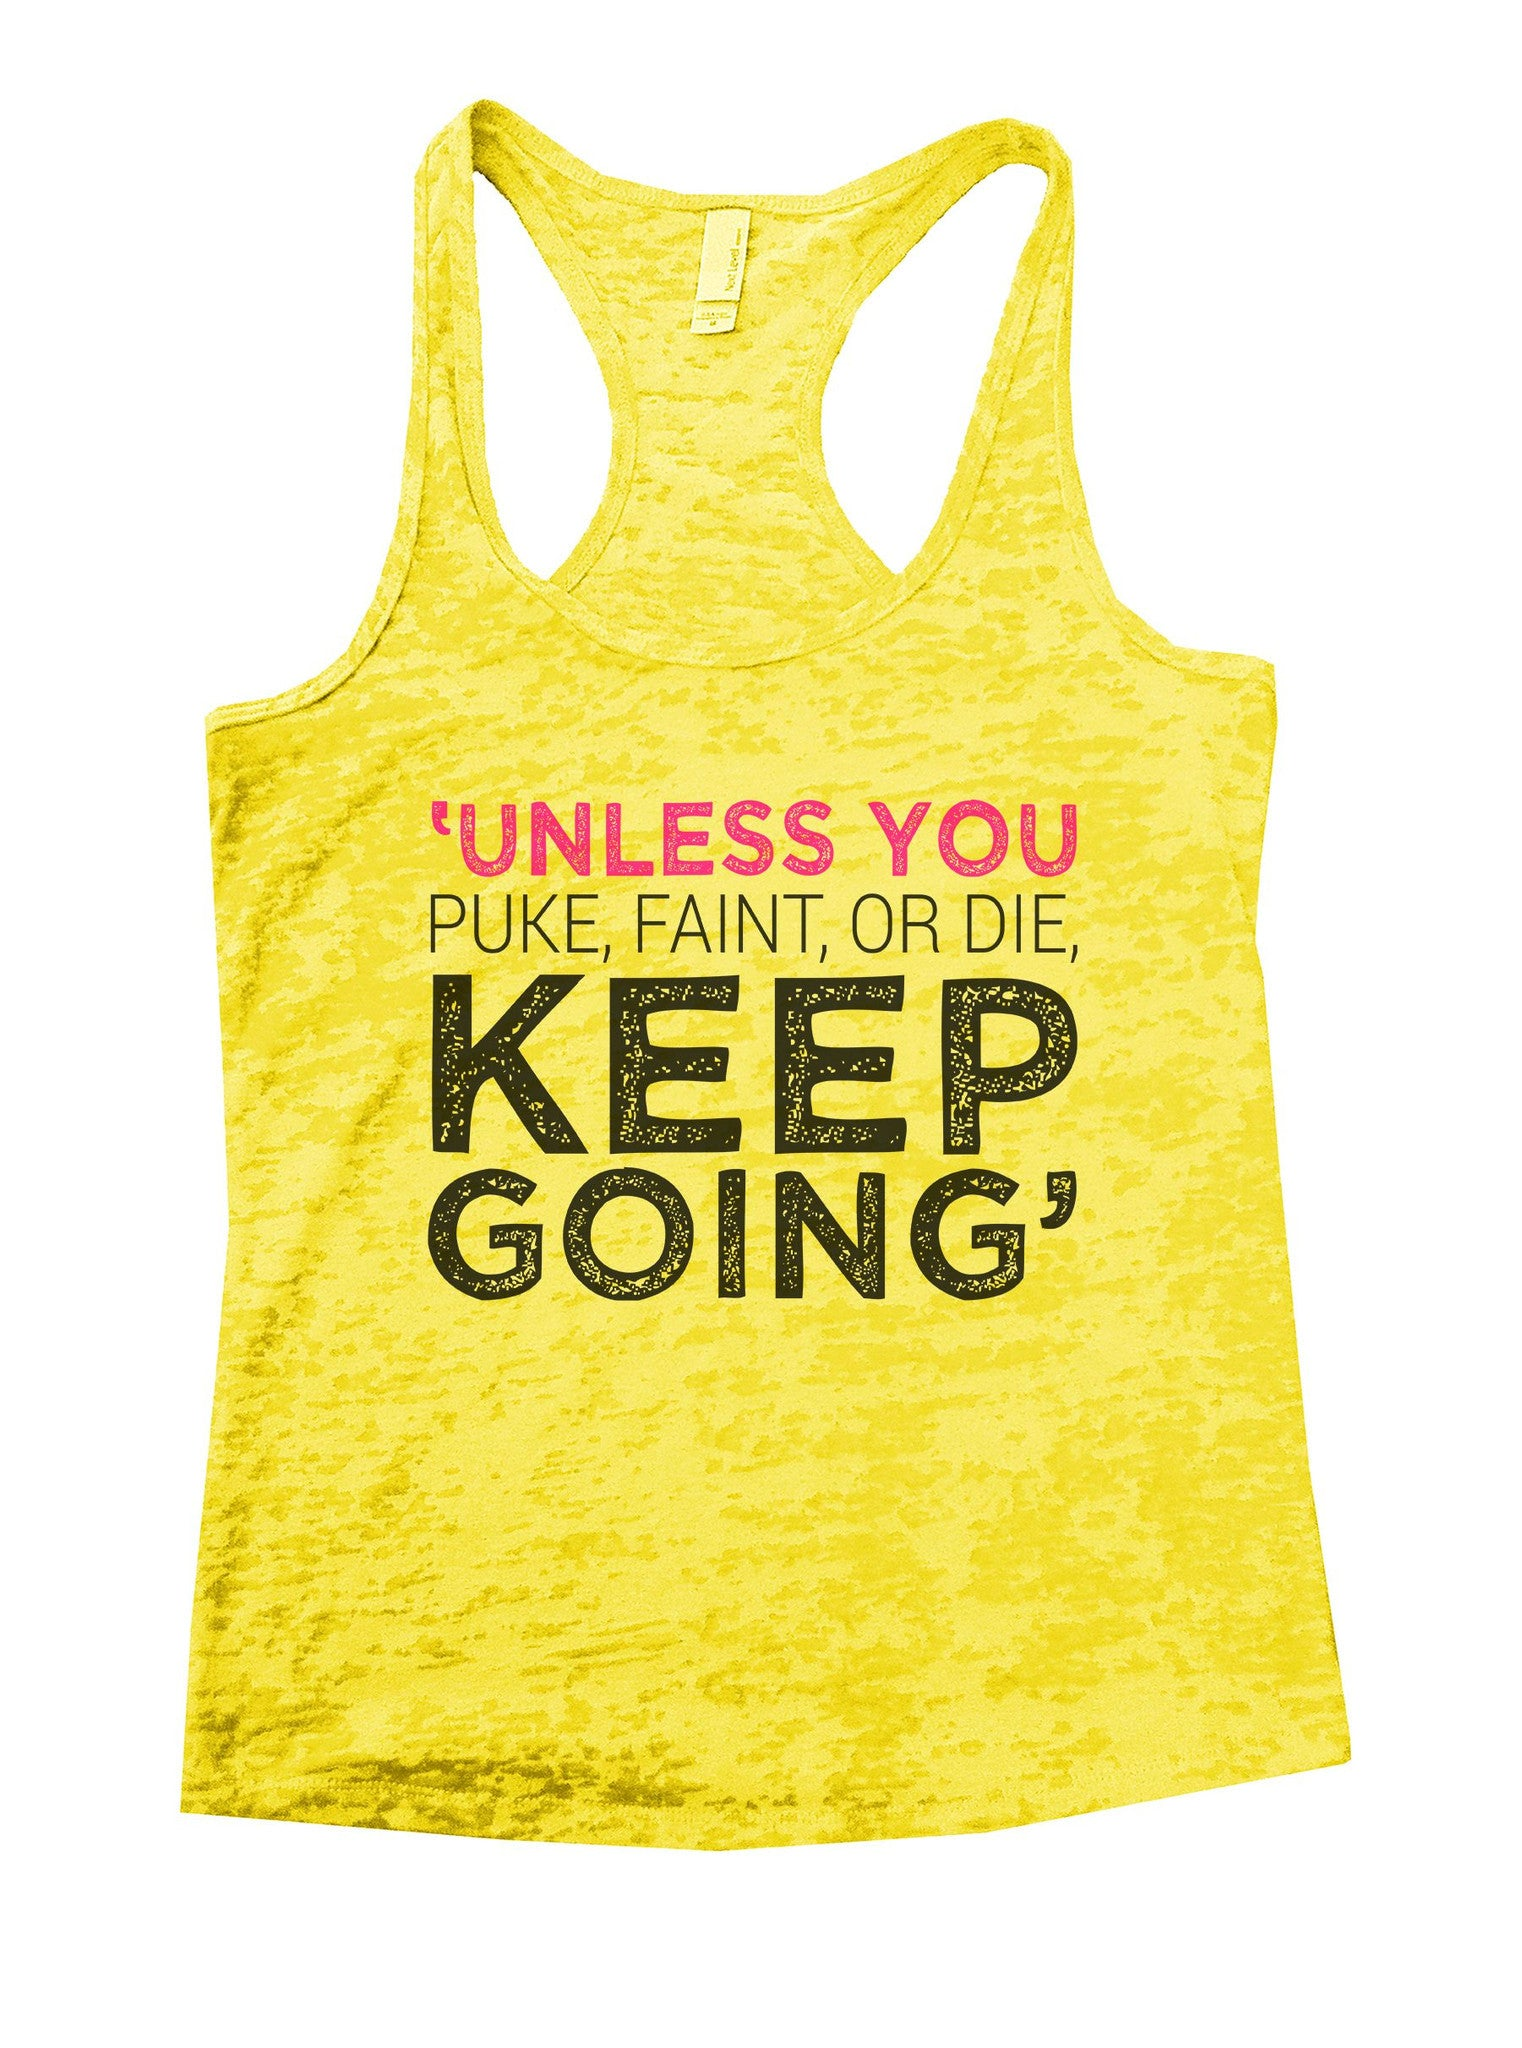 Unless You Puke, Faint, Or Die. Keep Going' Burnout Tank Top By BurnoutTankTops.com - 1104 - Funny Shirts Tank Tops Burnouts and Triblends  - 7